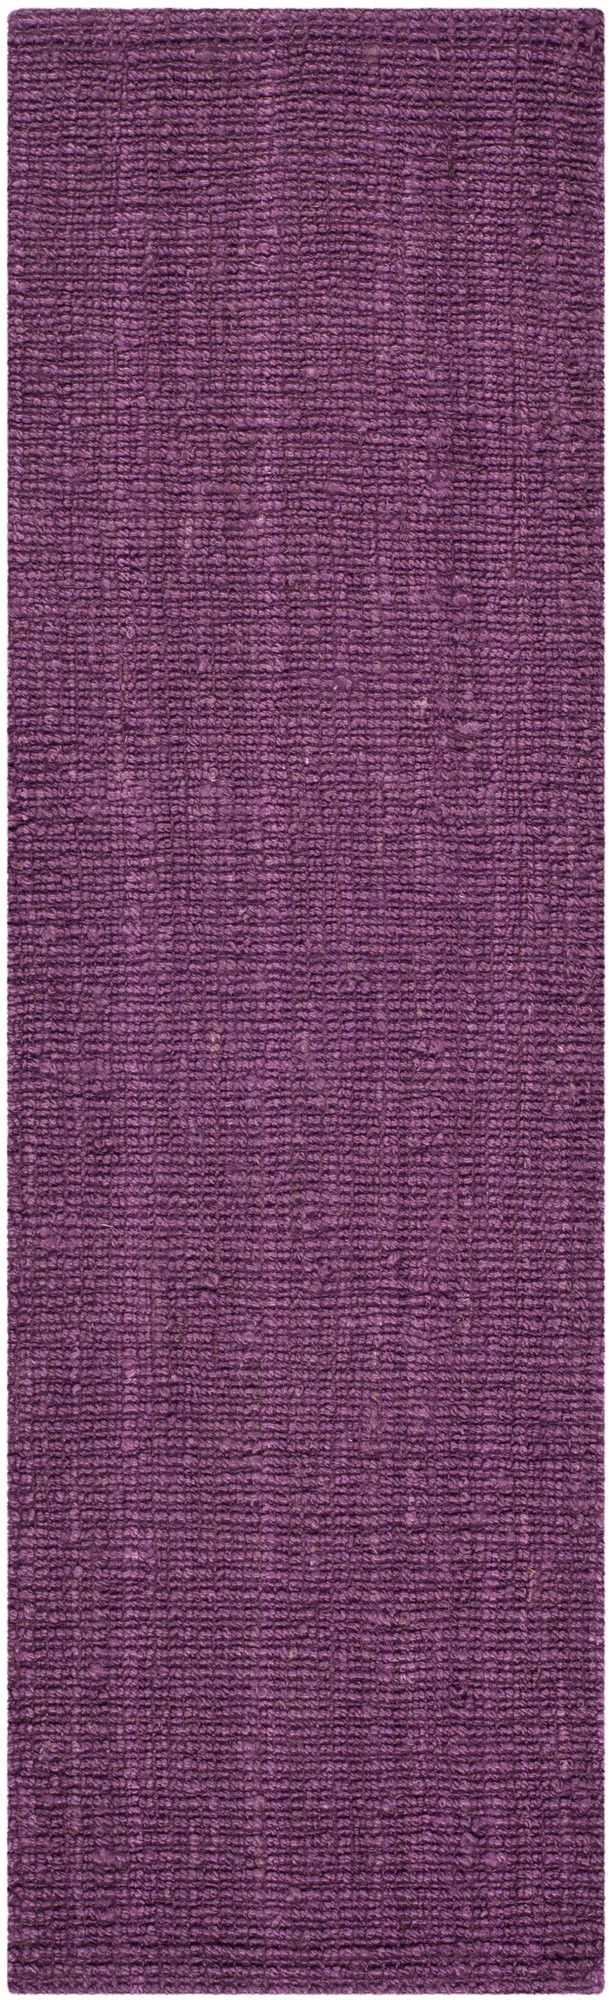 Marlene Indoor/Outdoor Rug